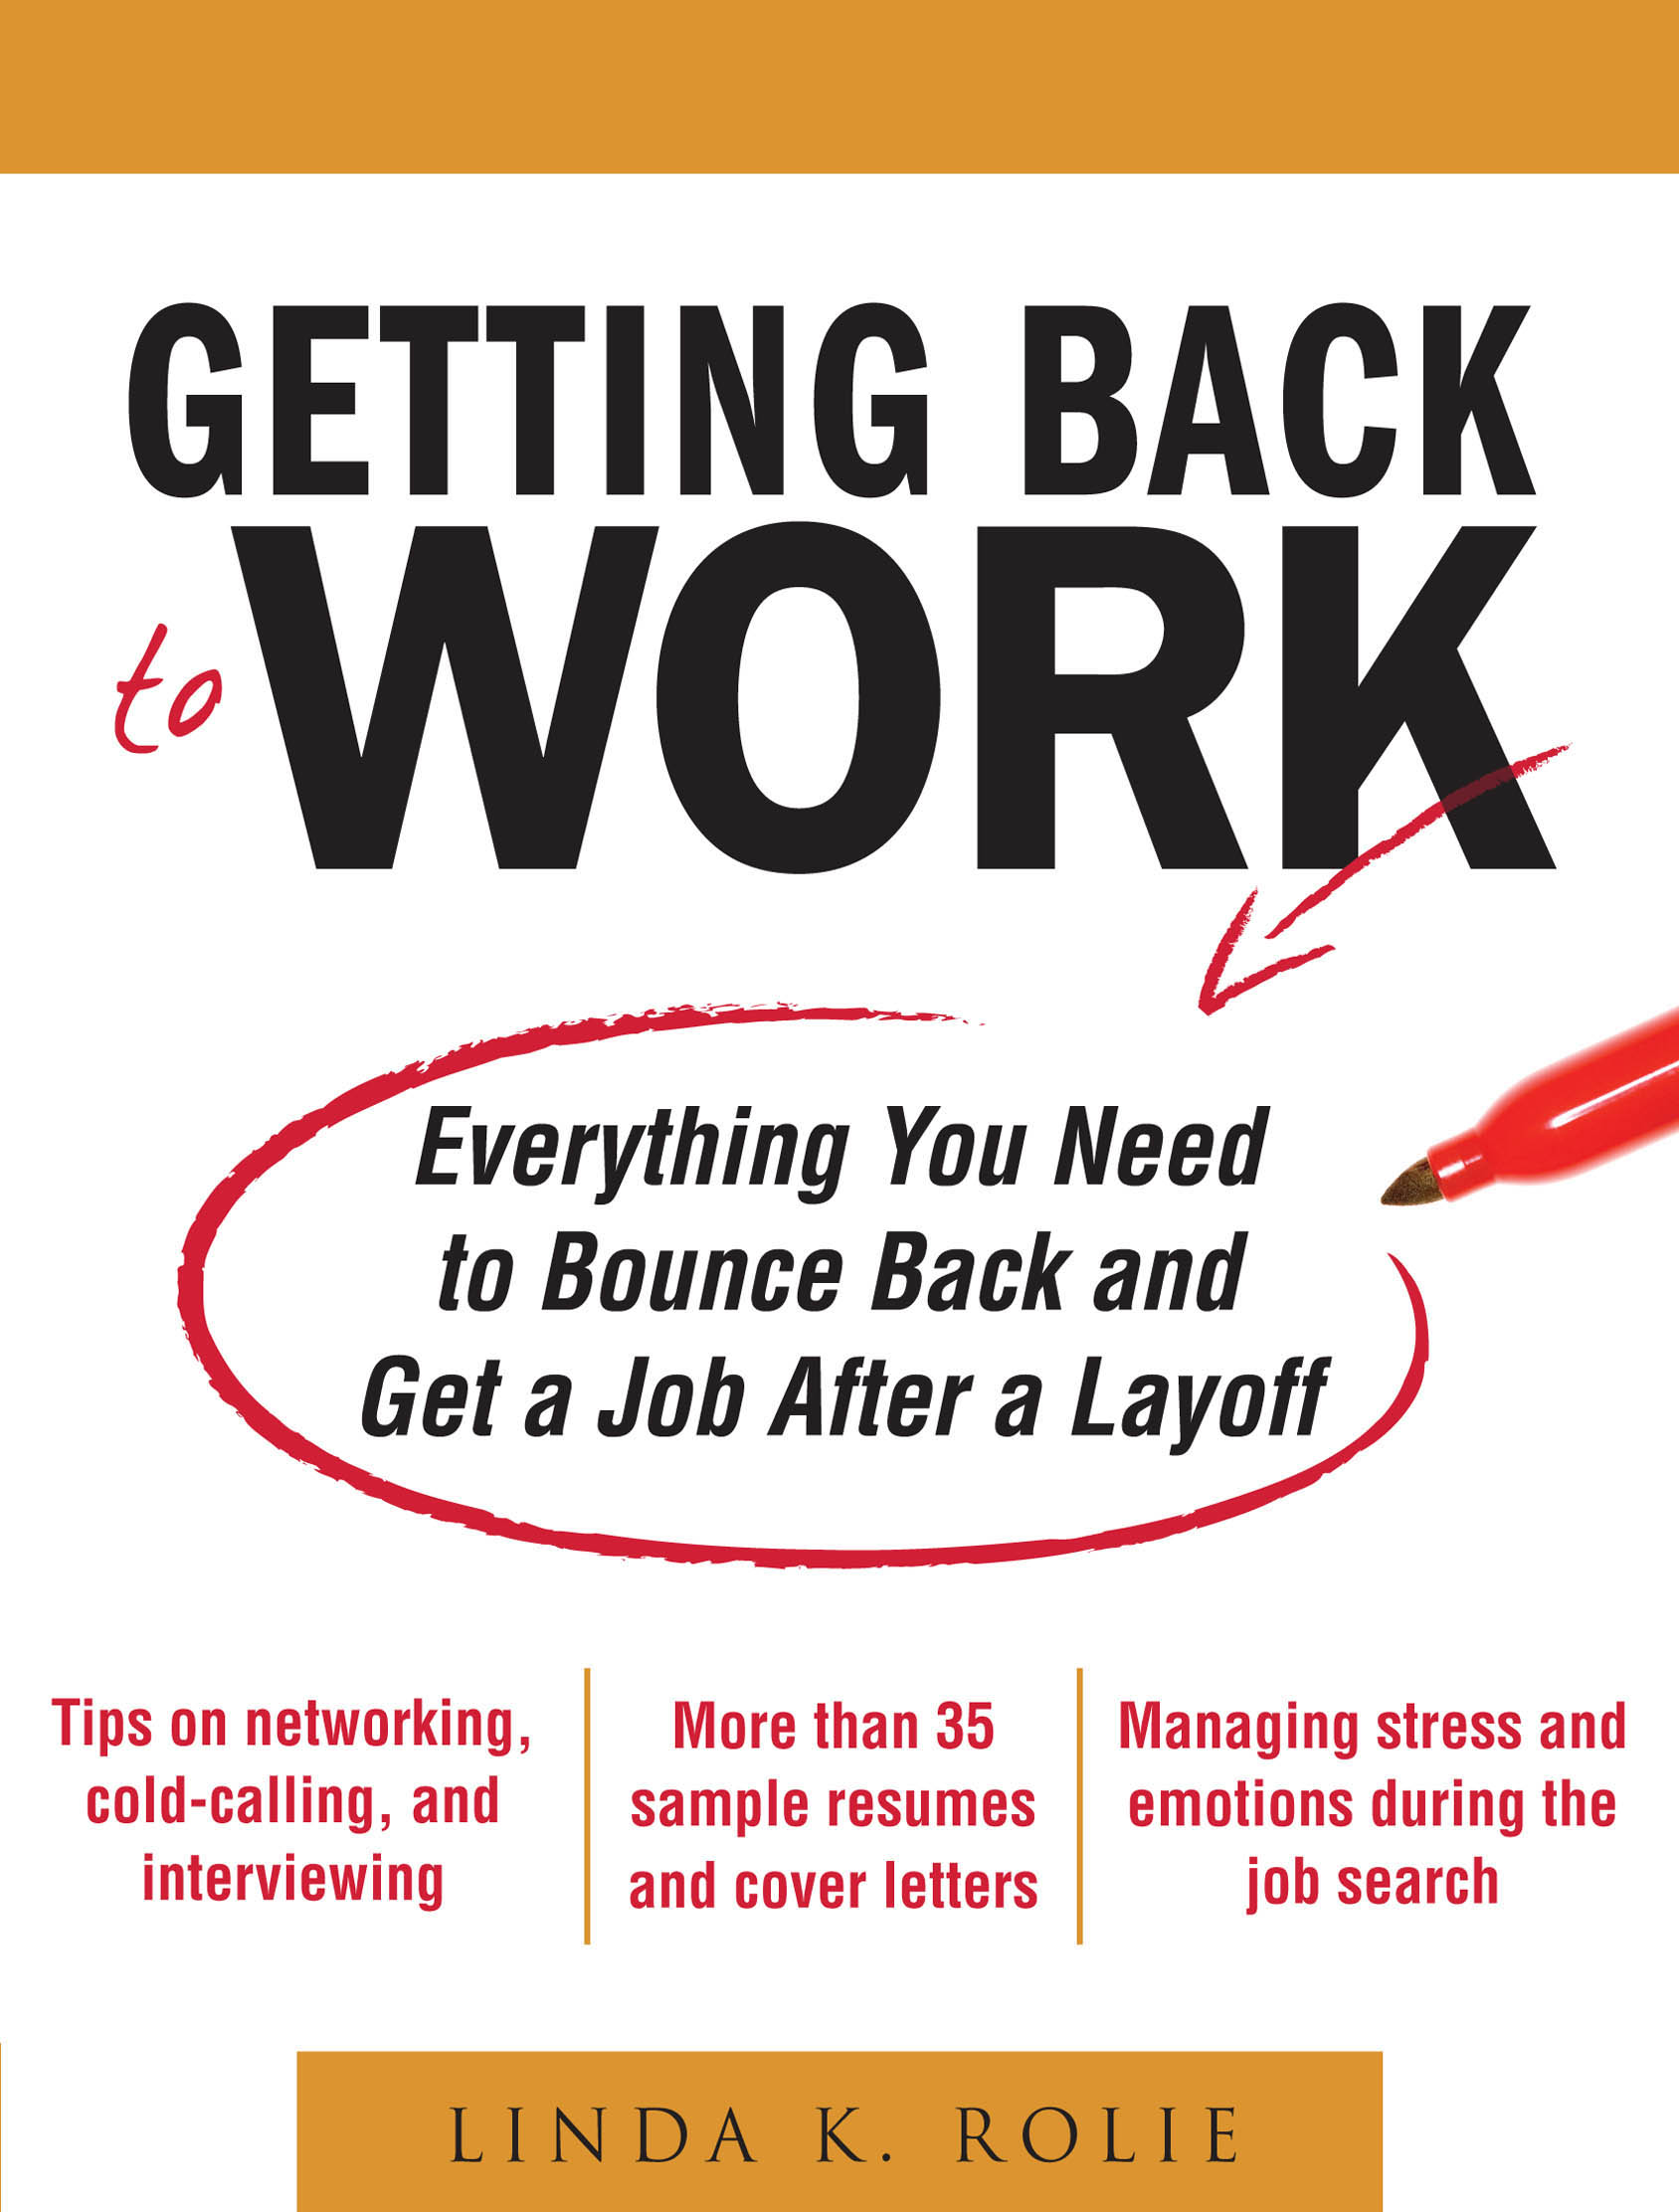 Download Ebook Getting Back to Work: Everything You Need to Bounce Back and Get a Job After a Layoff by Linda K. Swancutt Pdf